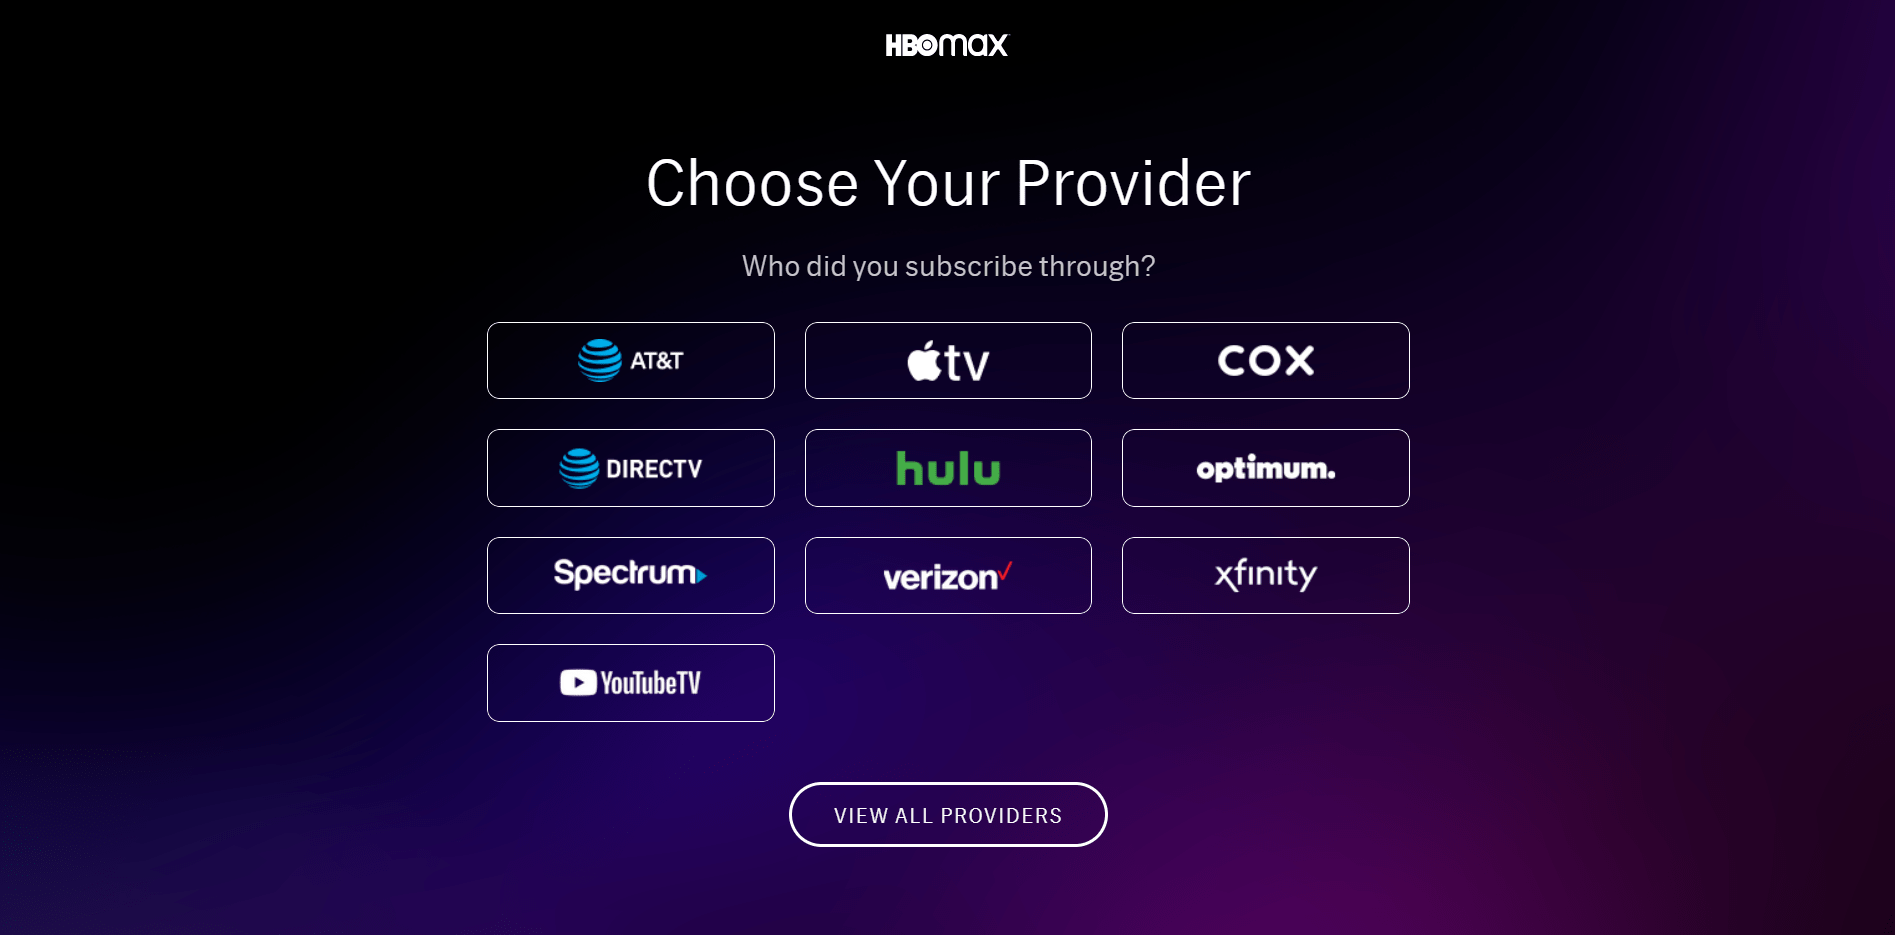 can't sign into HBO Max account